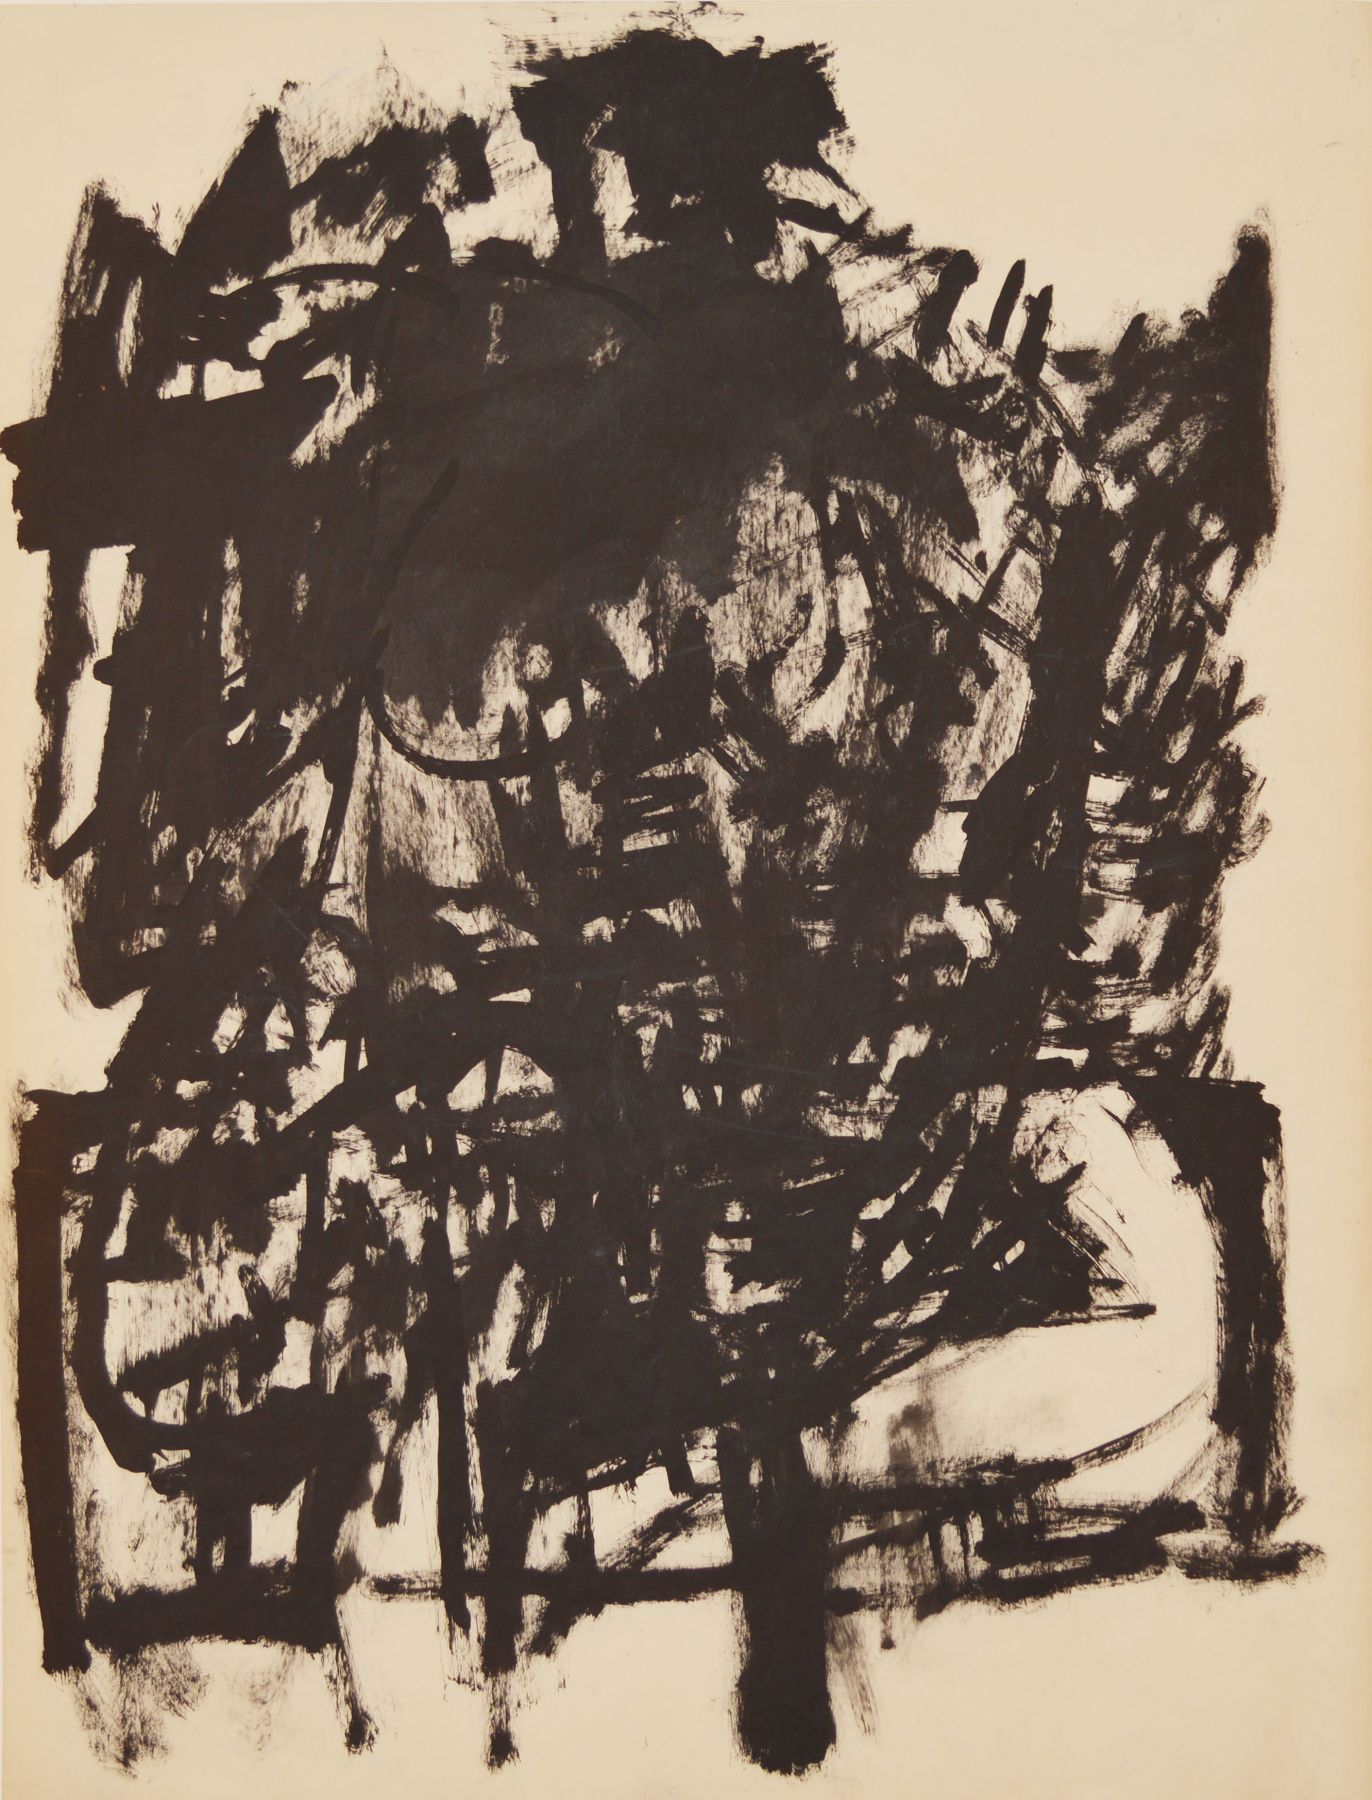 Jack Tworkov, Untitled (Seated Figure), c. 1954